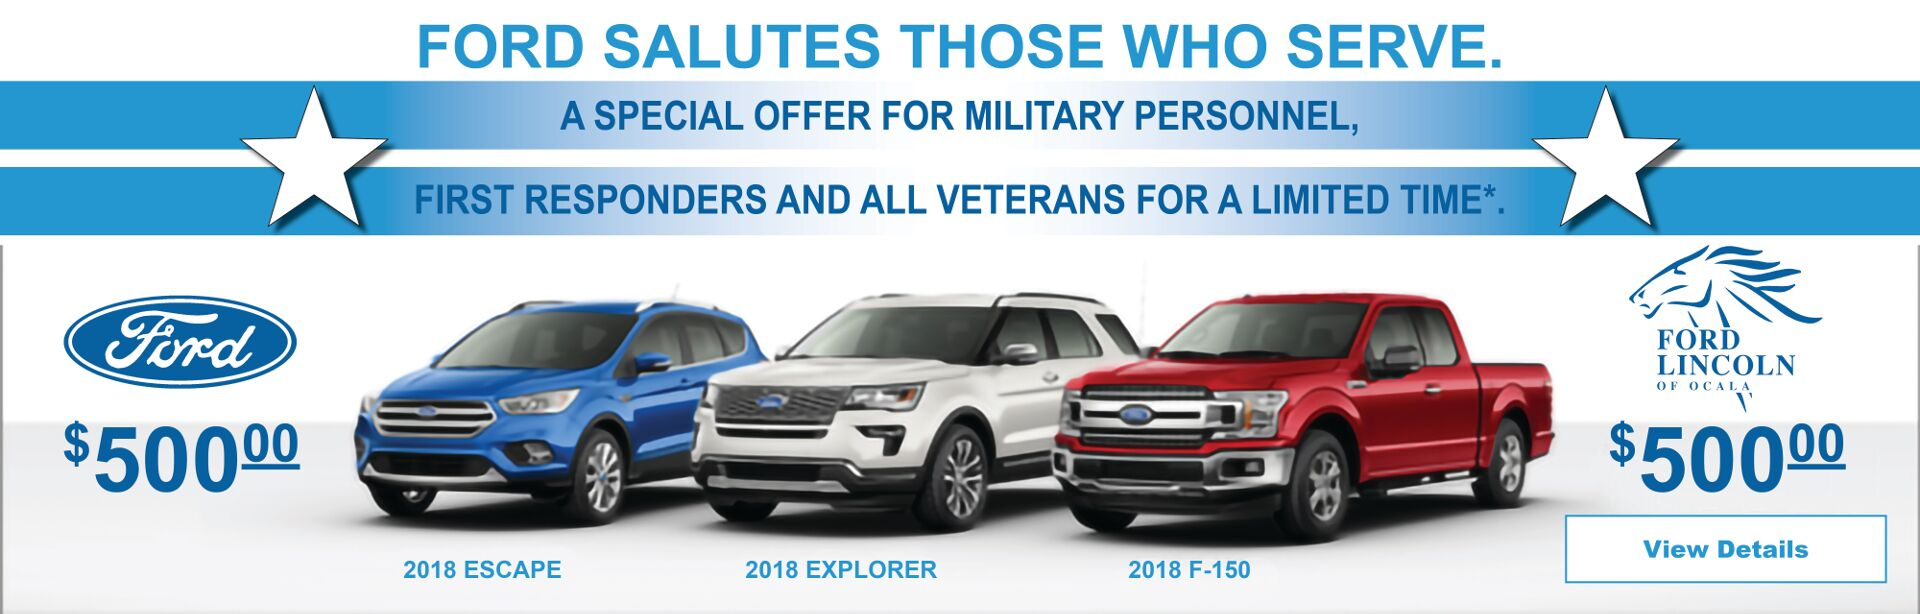 ford salutes